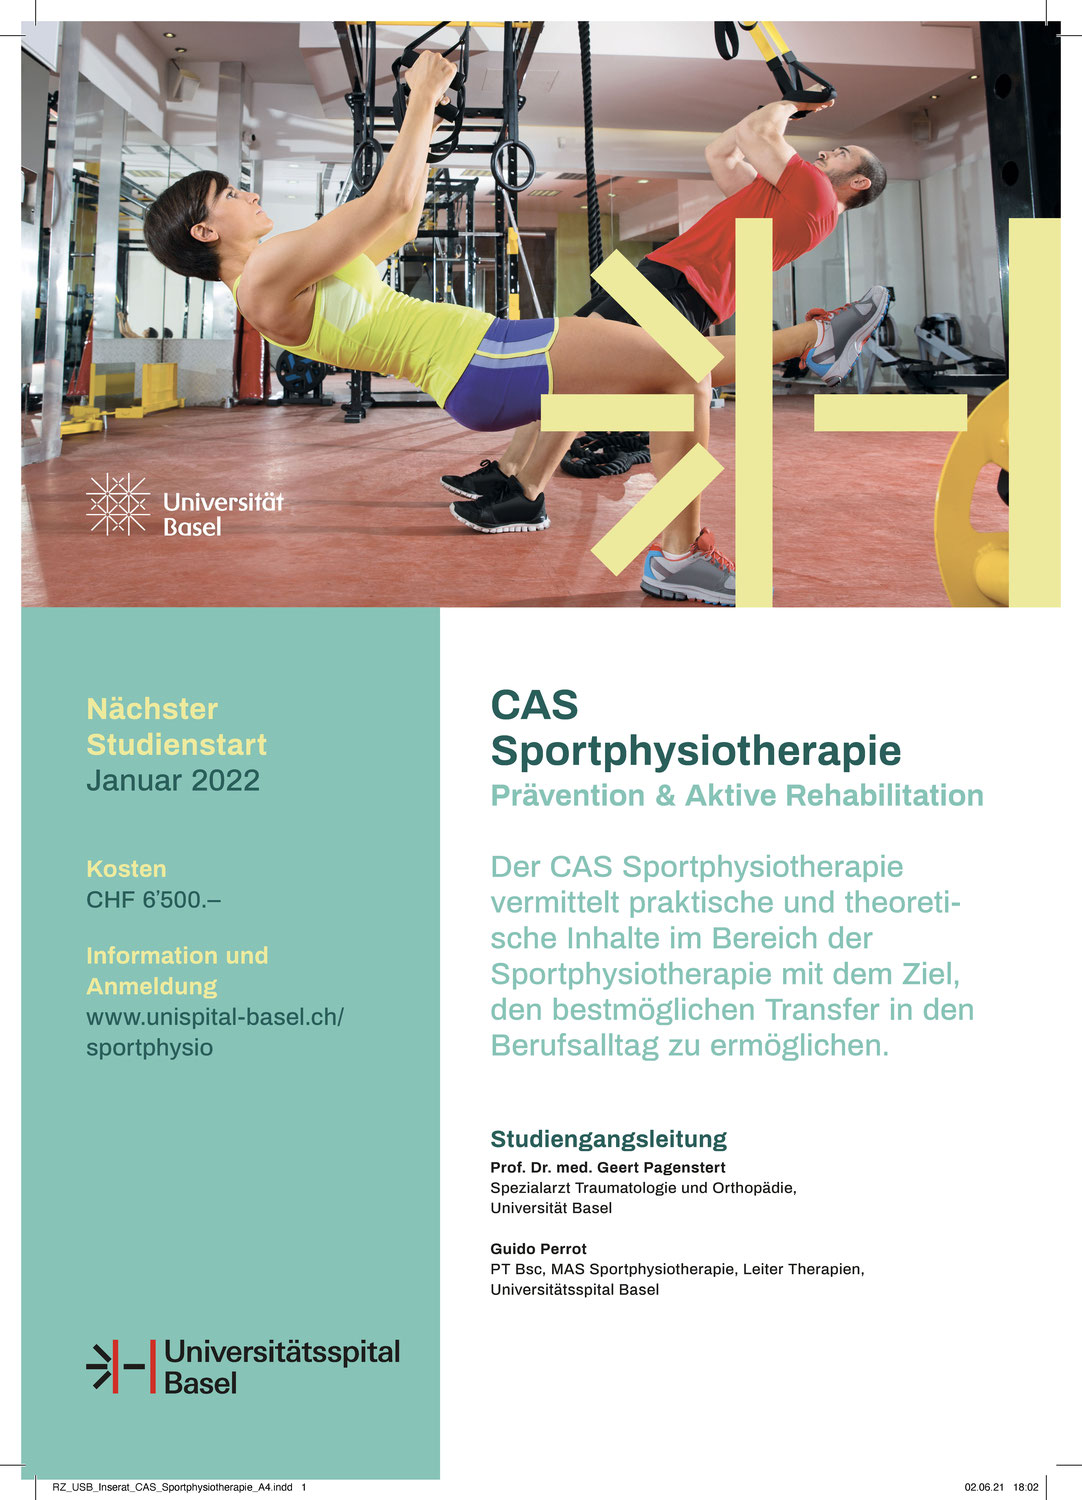 CAS Sportphysiotherapie 2022 in Basel